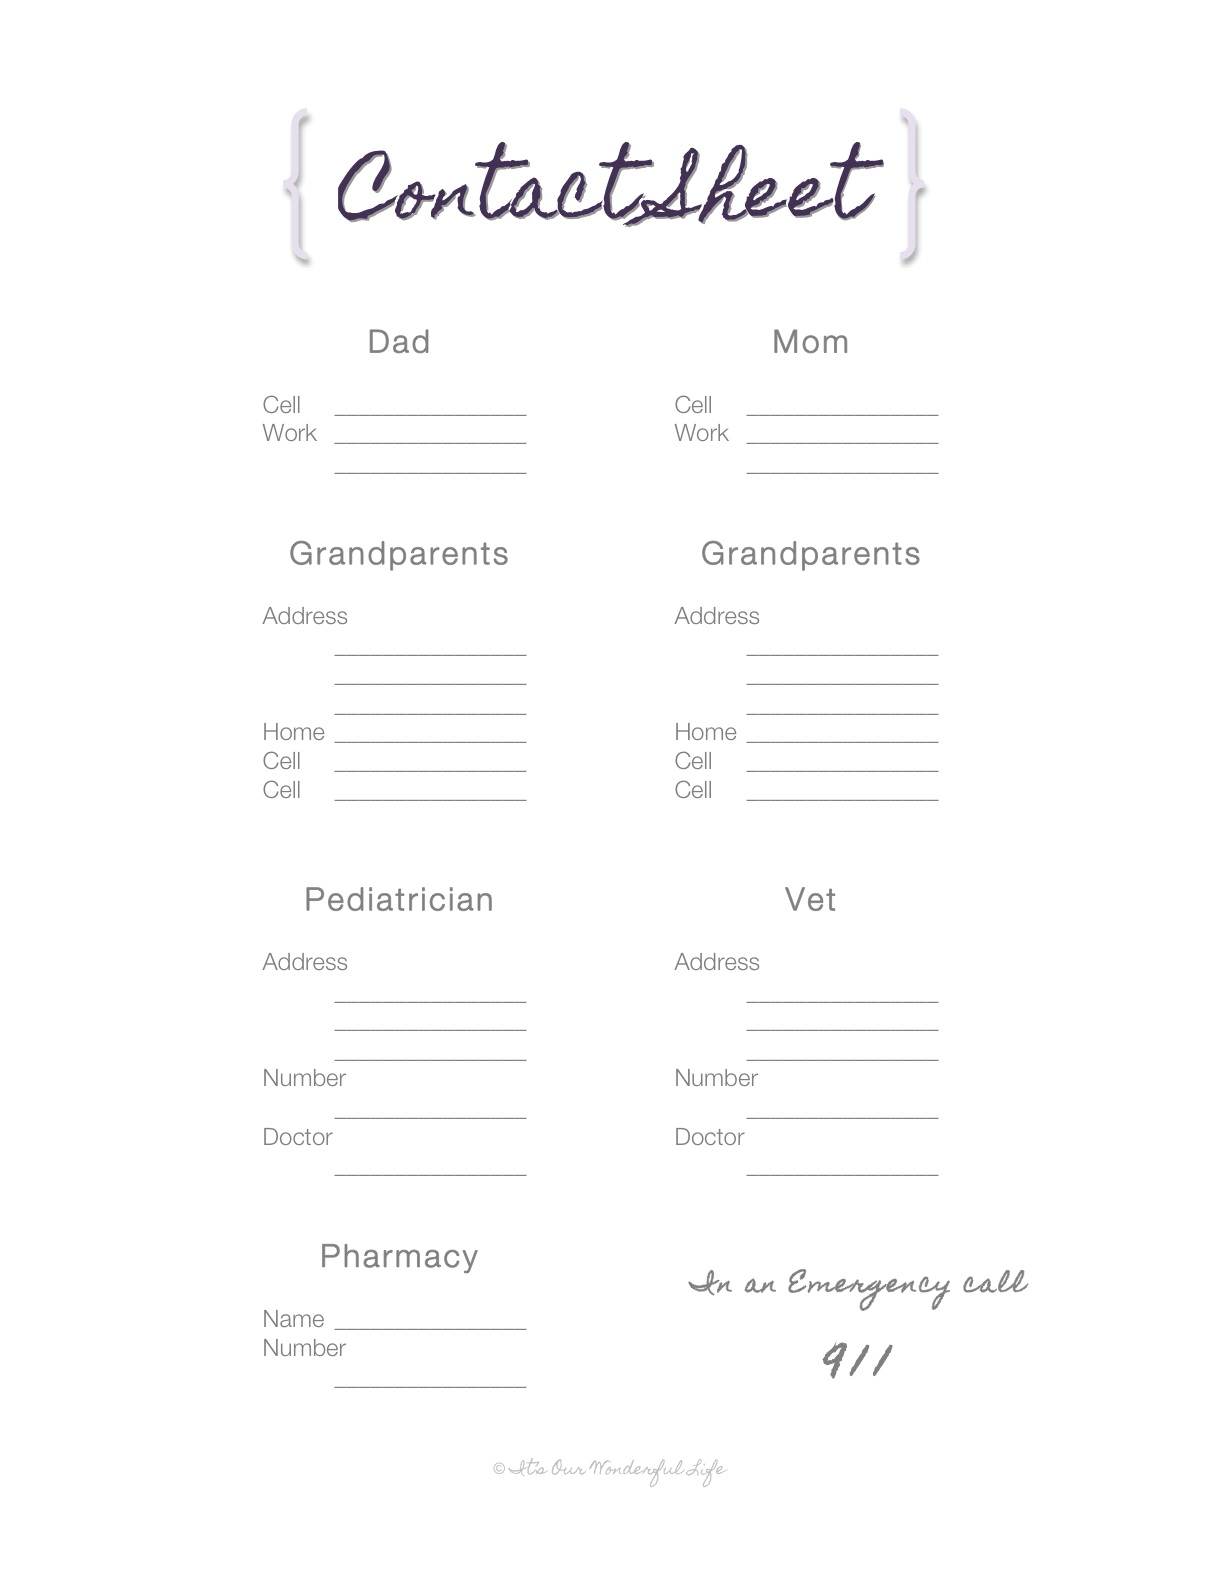 reference contact sheet